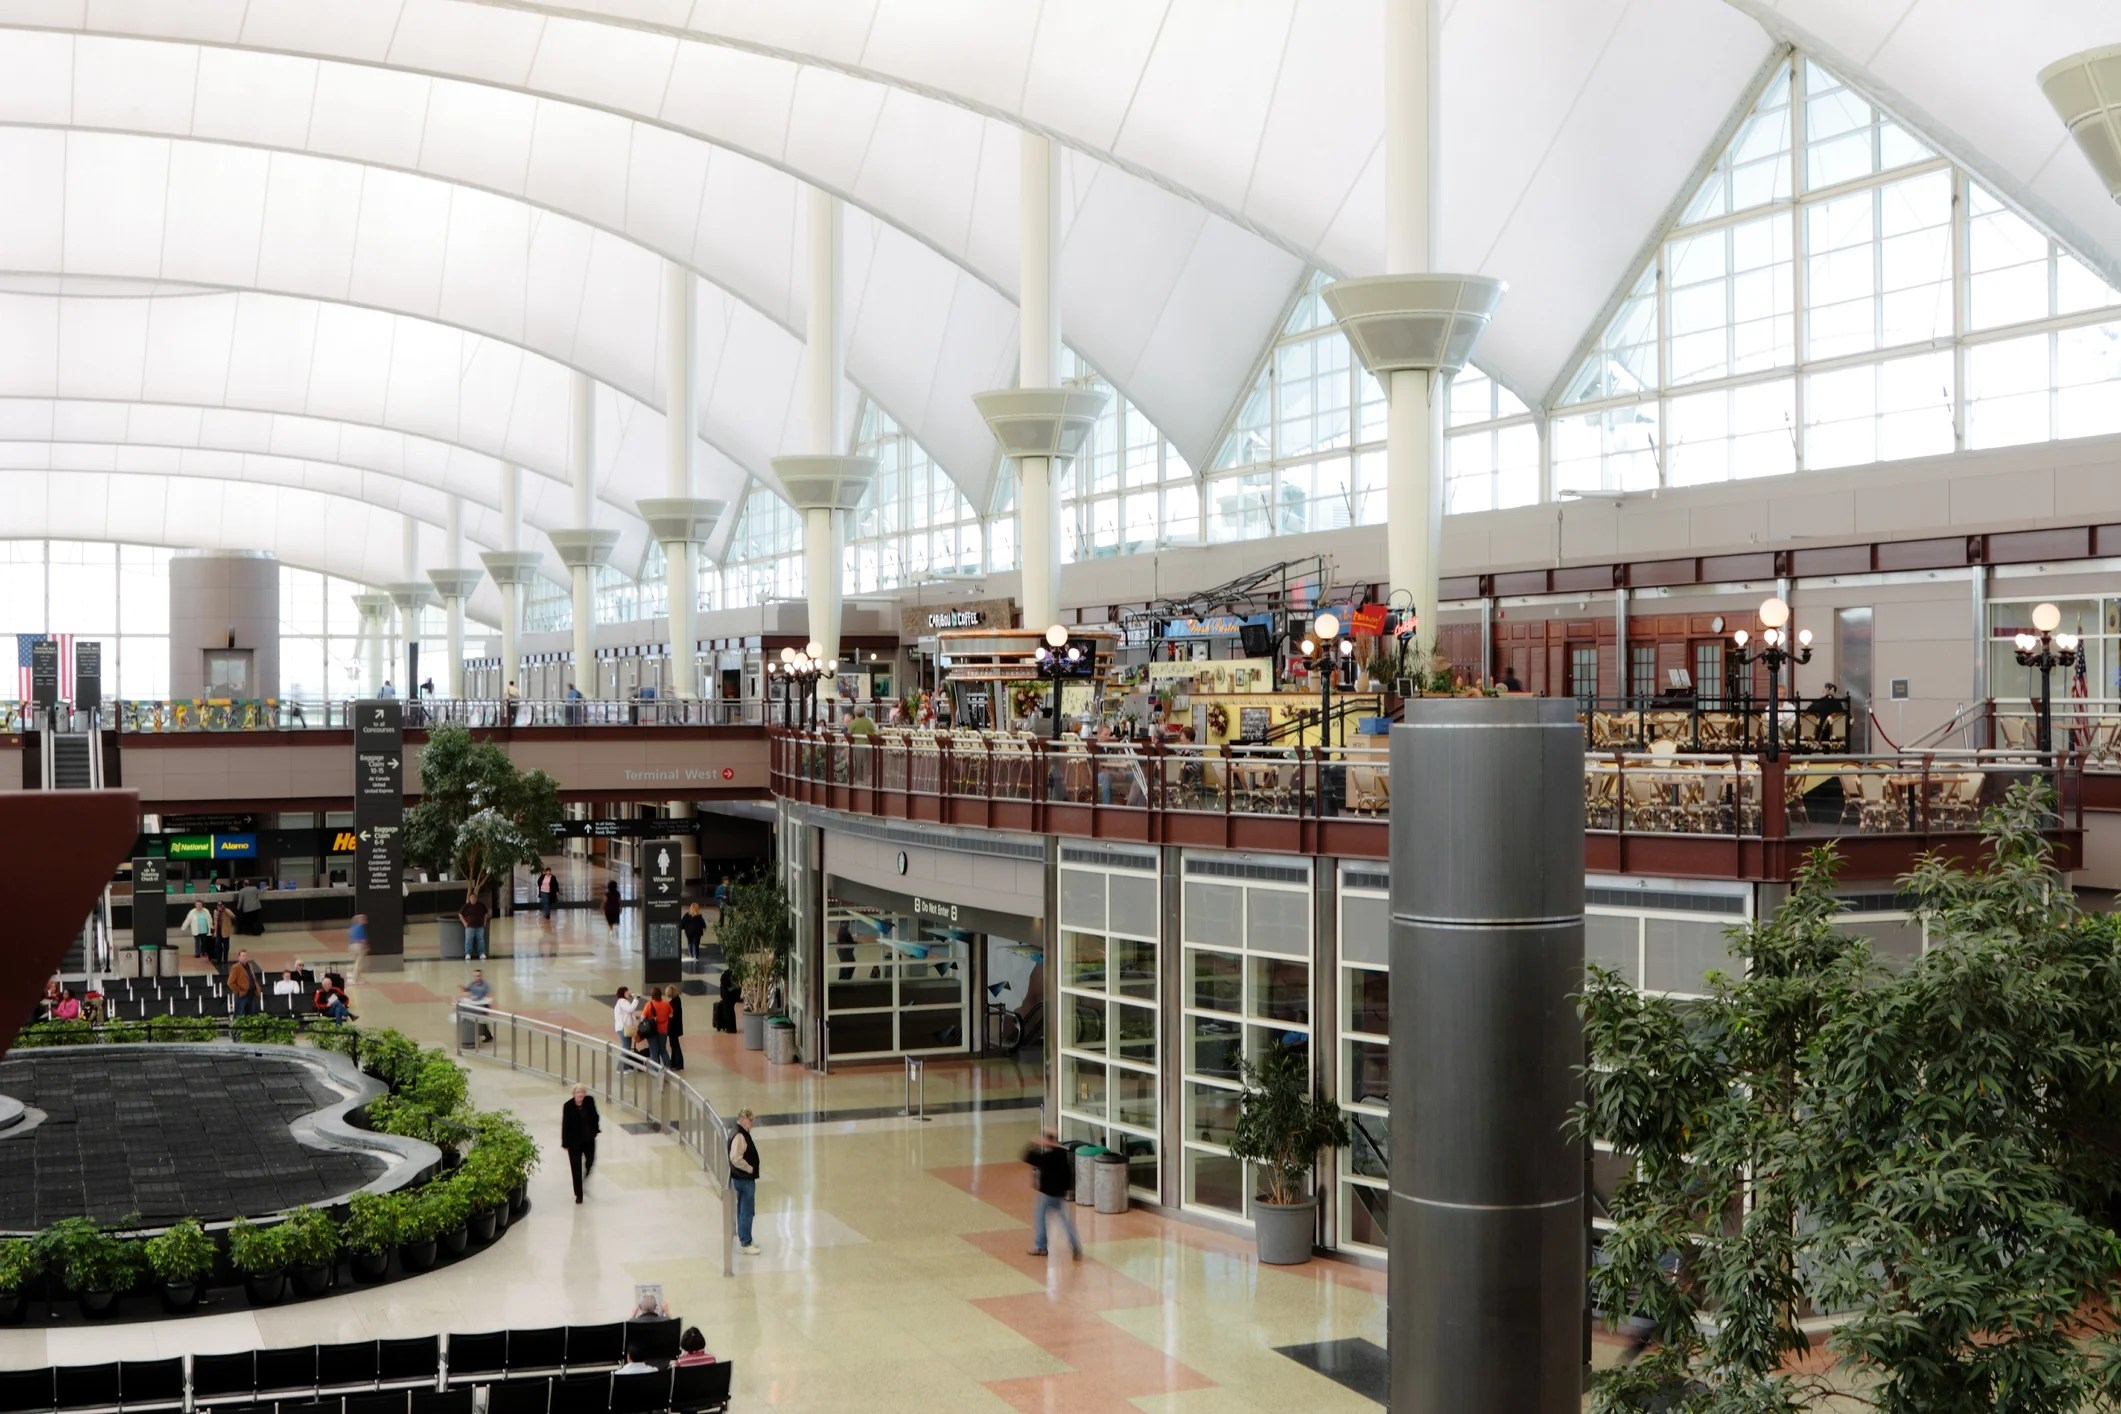 Denver Airport 101: A guide to the lounges at DEN